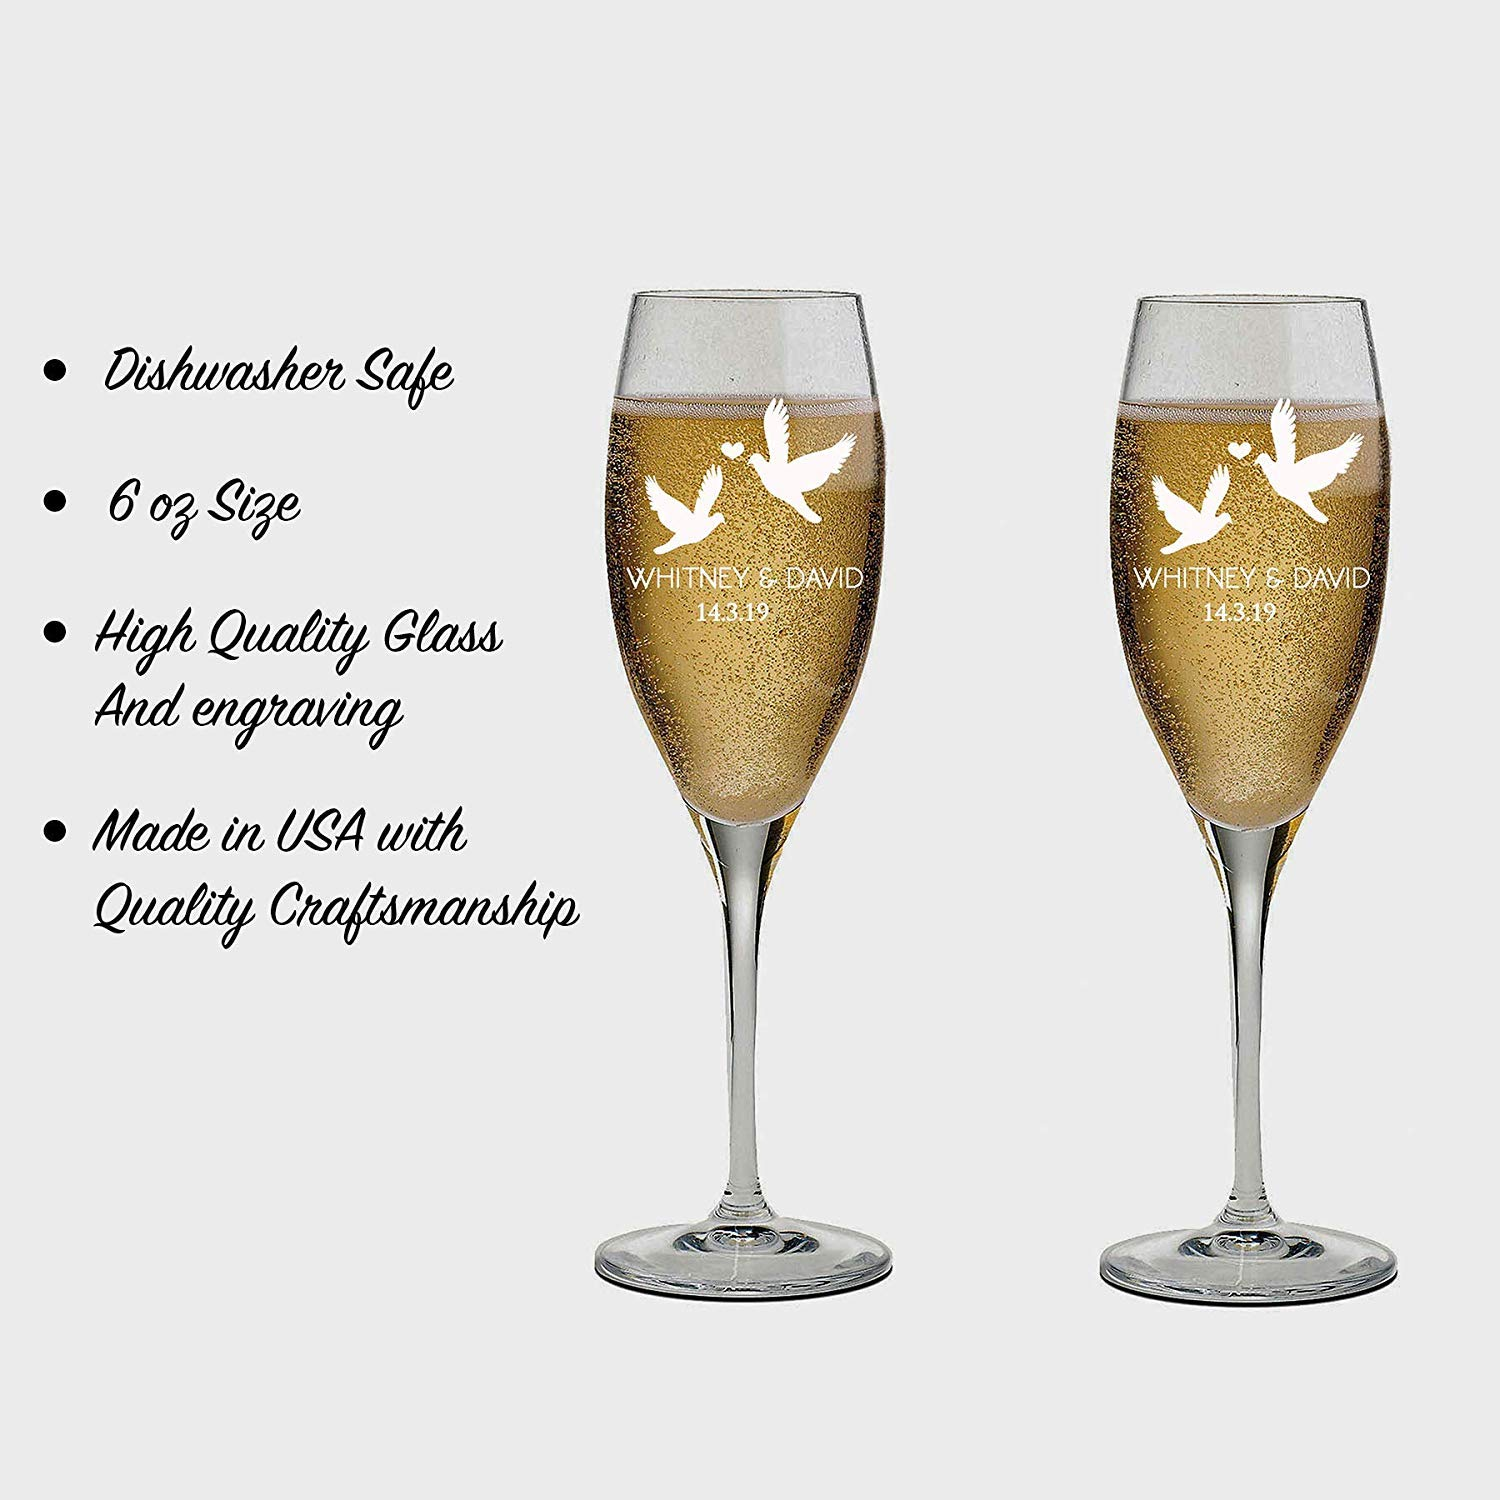 Bridesmaid Champagne Glasses Bridesmaid Champagne Flutes Set of 2 Bridal Party Gifts Personalized Champagne Glasses for Bridesmaids Gift